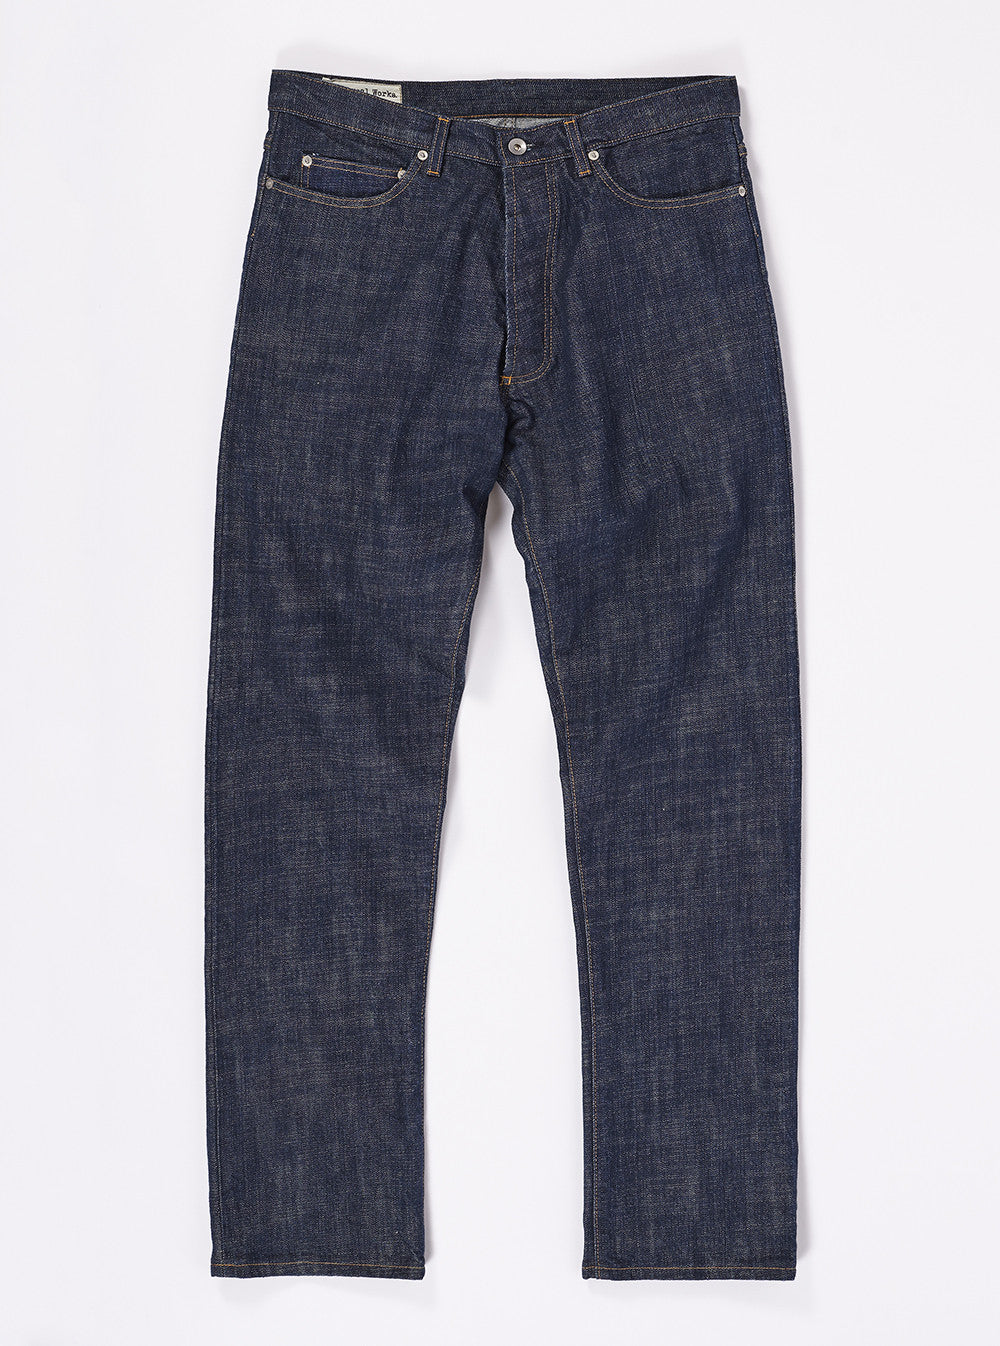 Workshop Denim Regular Fit Jeans In Indigo Slub Selvedge Denim